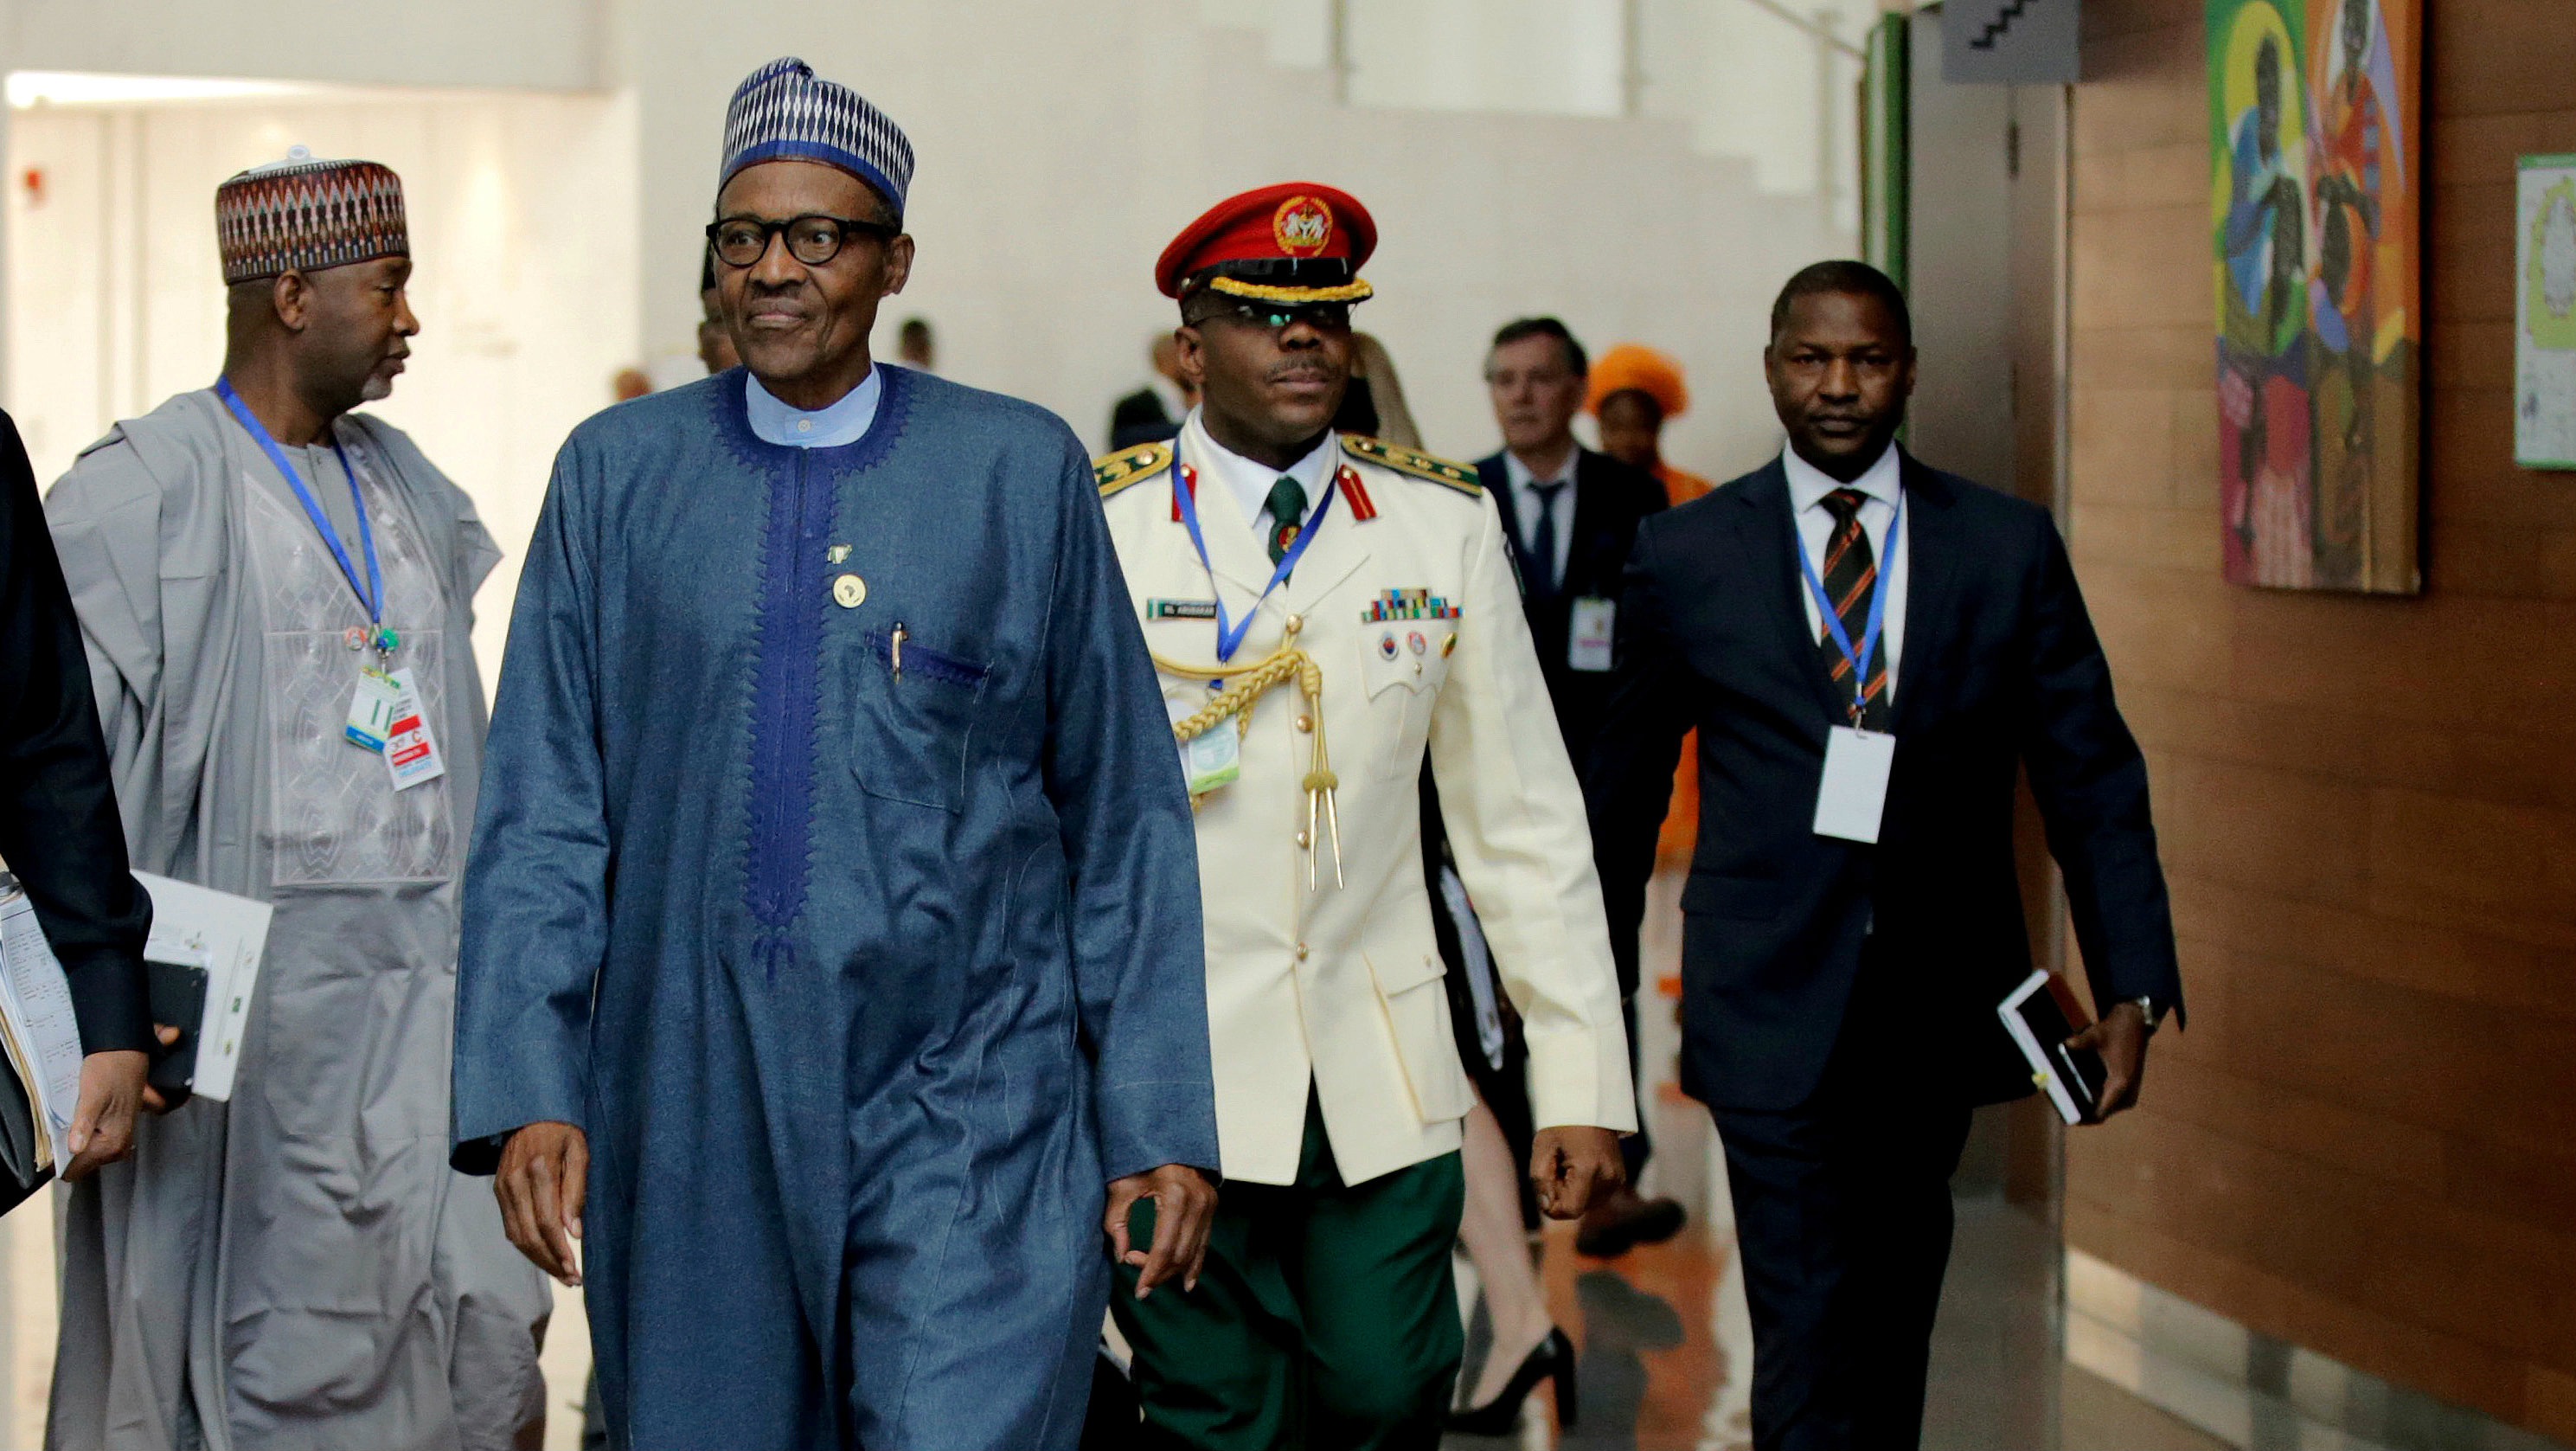 Nigeria's President Muhammadu Buhari arrives for the 30th Ordinary Session of the Assembly of the Heads of State and the Government of the African Union in Addis Ababa, Ethiopia January 28, 2018.